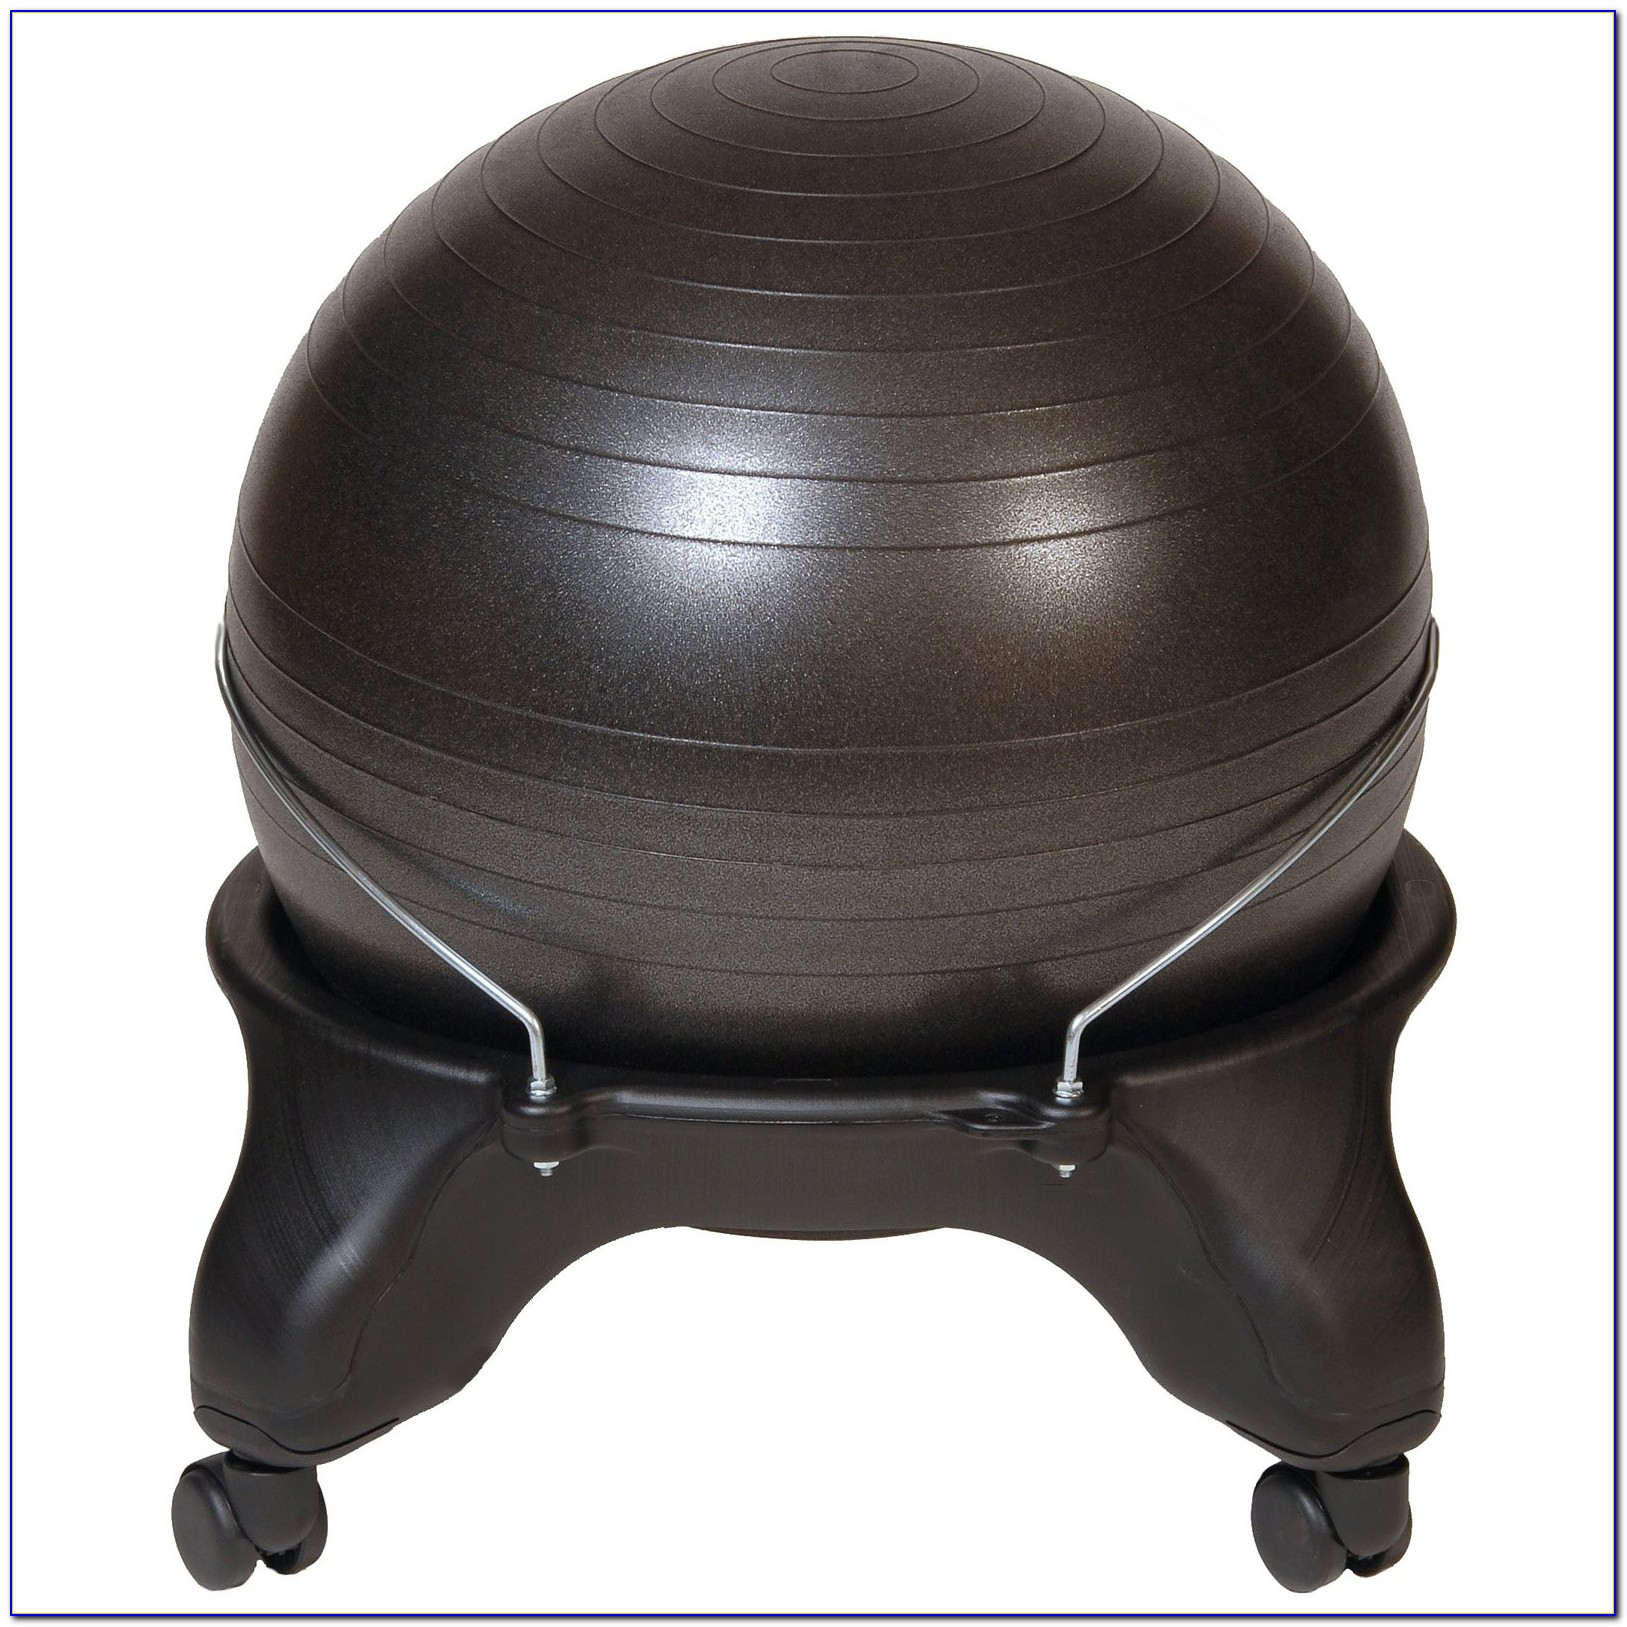 Ball Chair Office Depot